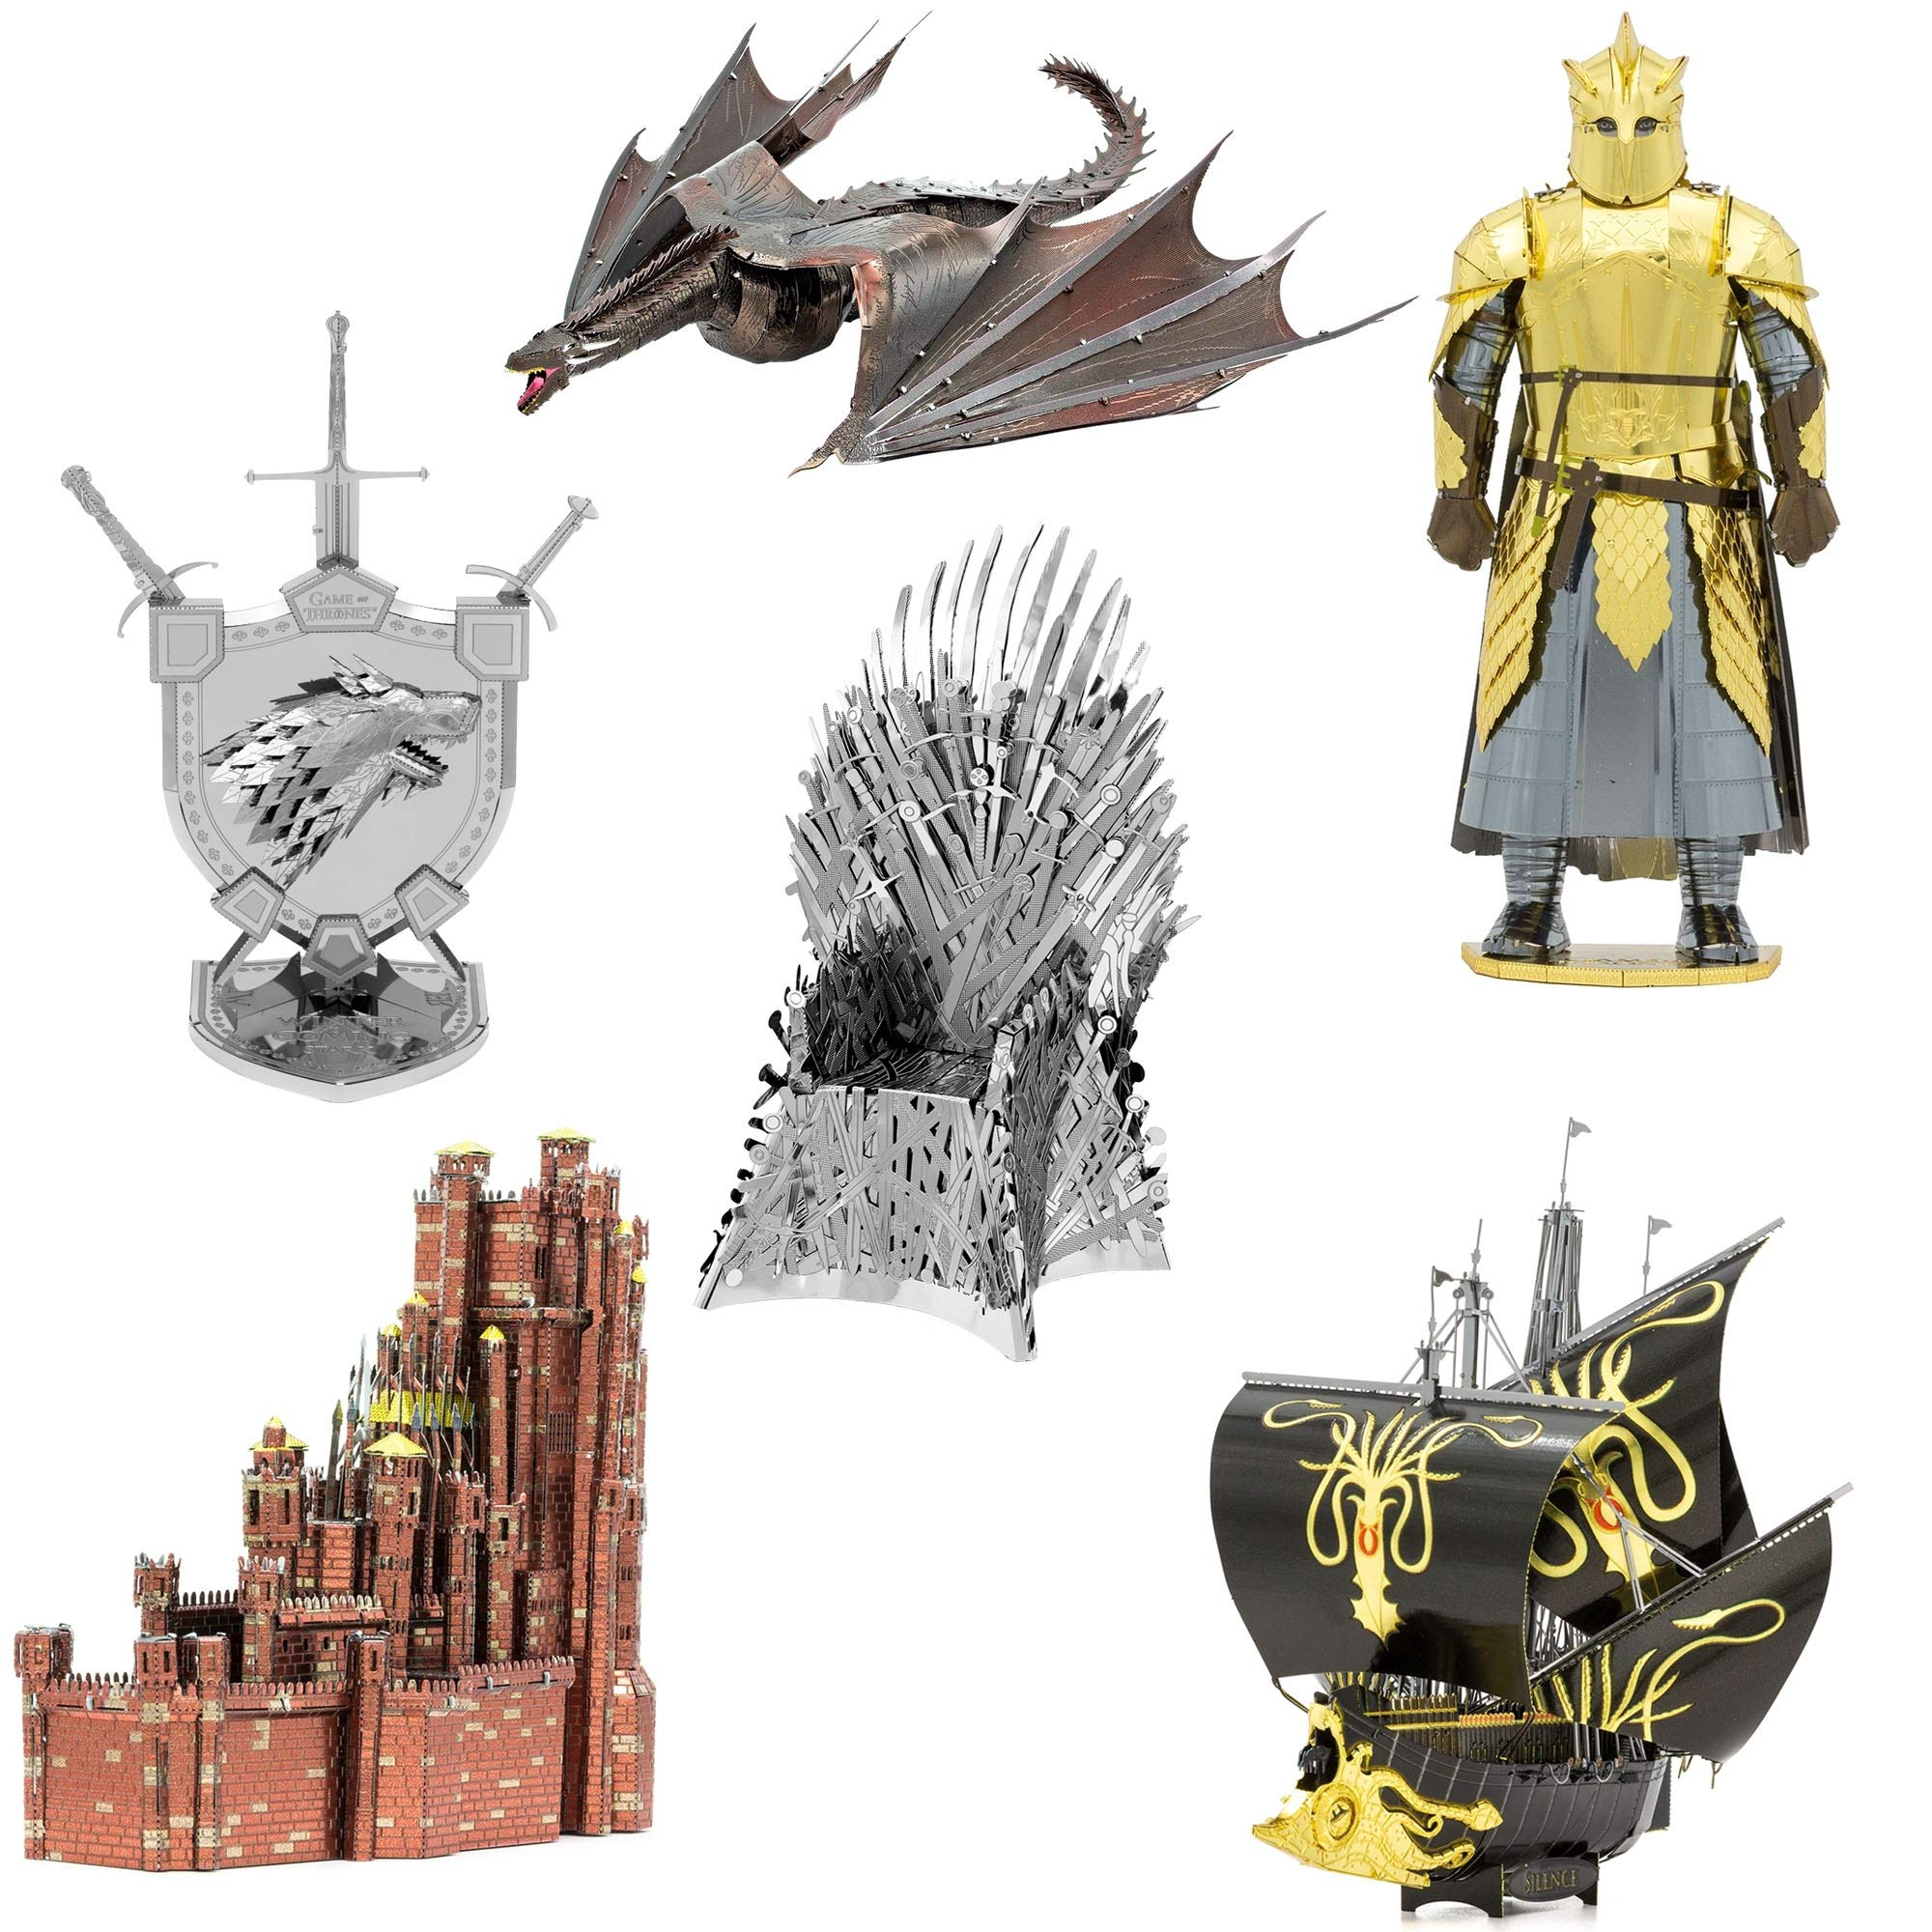 Fascinations Metal Earth ICONX 3D Metal Model Kits Game of Thrones Set of 6 - Red Keep - Silence - House Stark Sigil - Drogon - The Mountain - Iron Throne